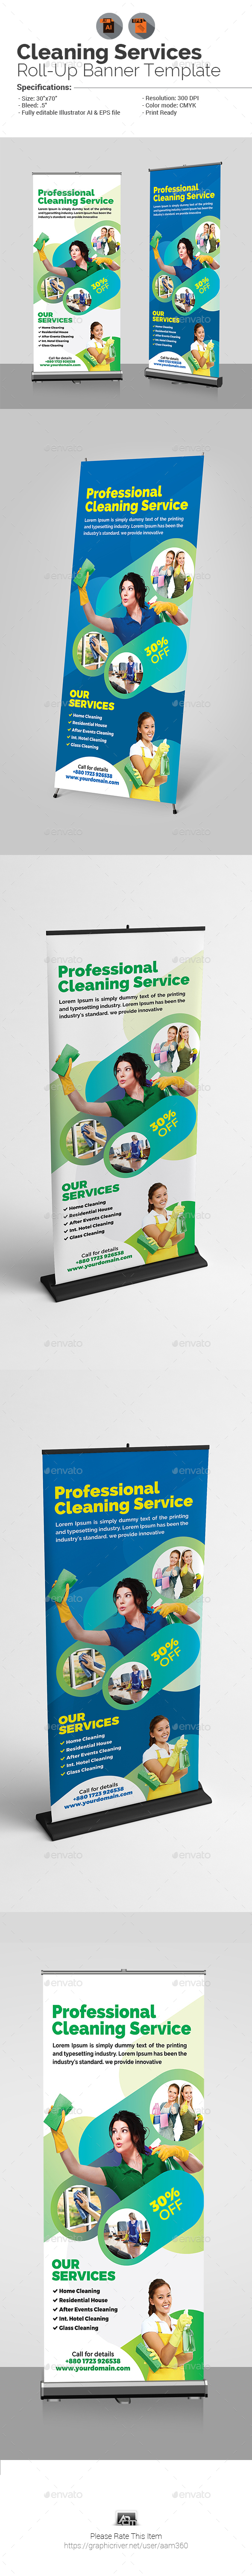 Cleaning Service Roll-Up Banner - Signage Print Templates